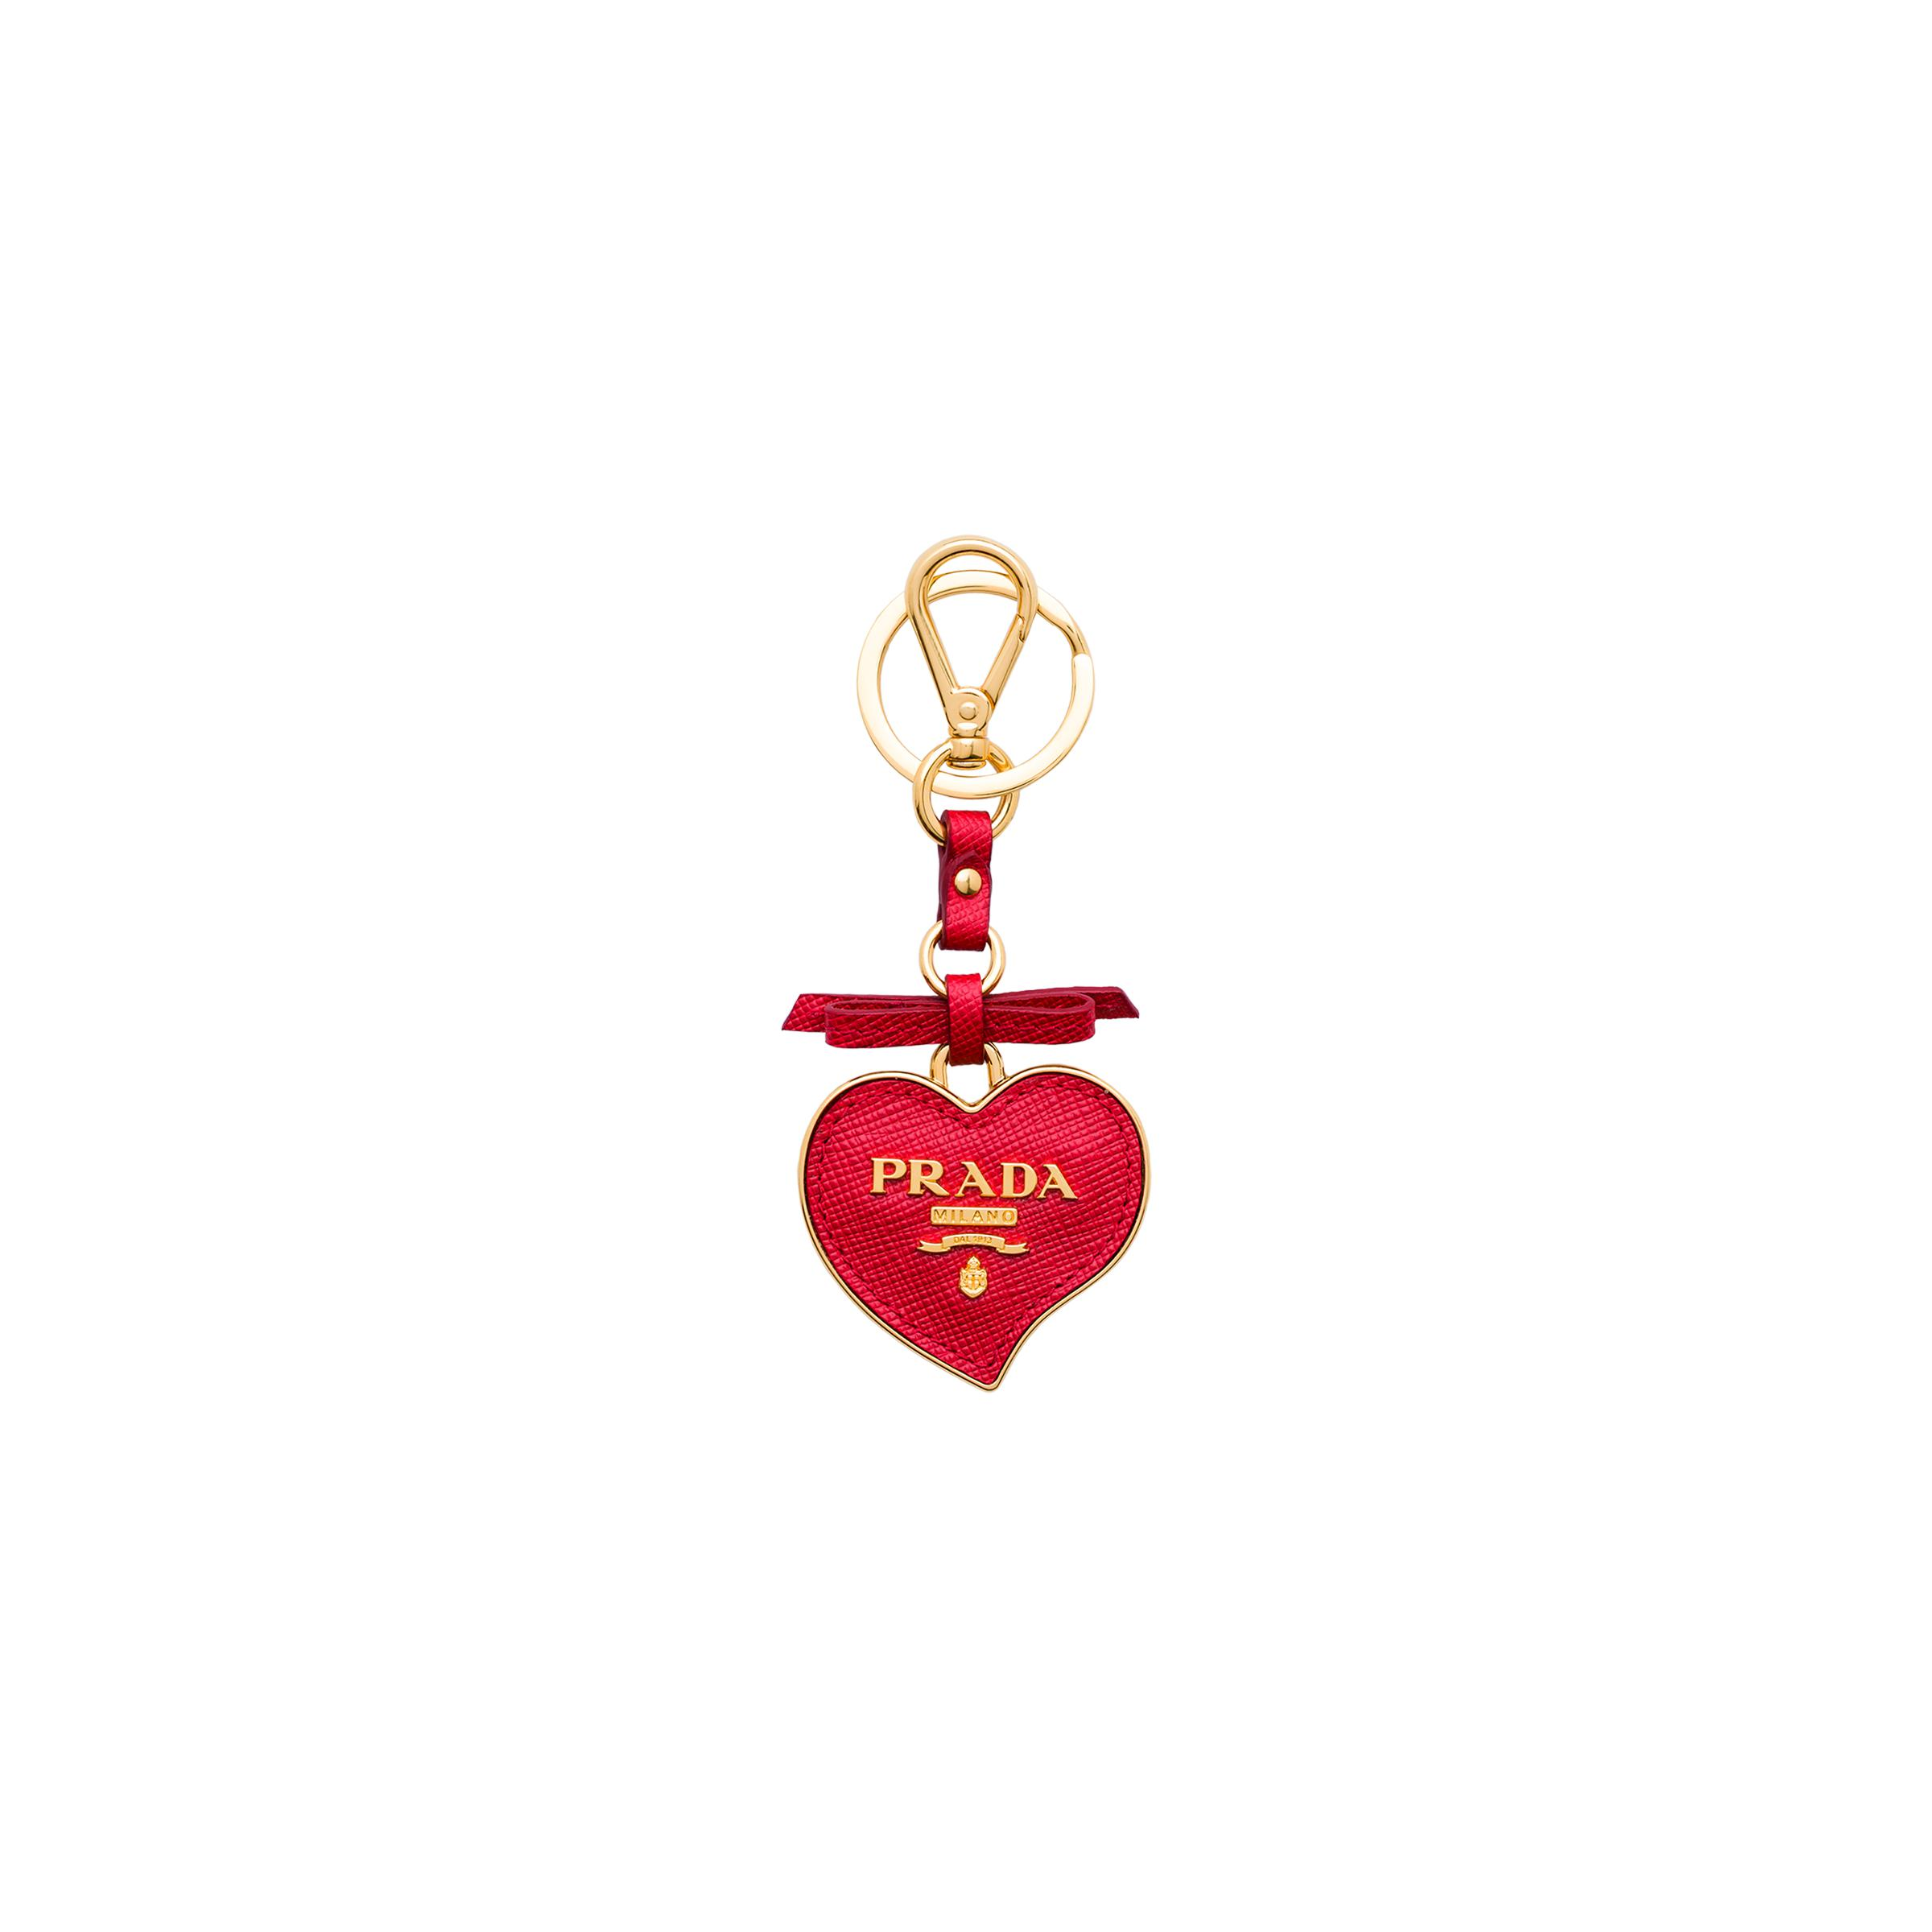 Saffiano And Metal Keychain Trick Women Fiery Red